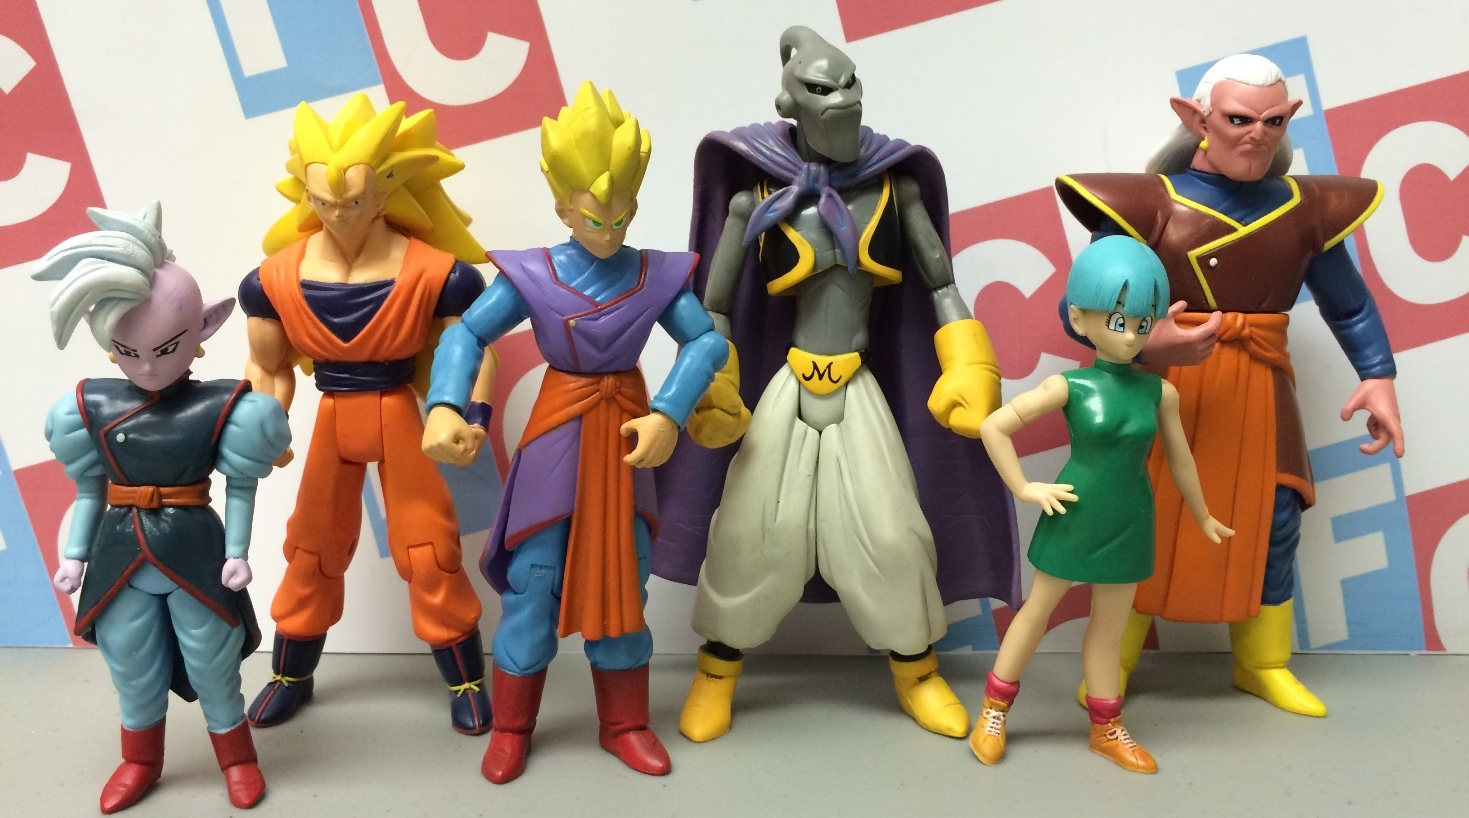 Dragon Ball Z Toys : Figure collections